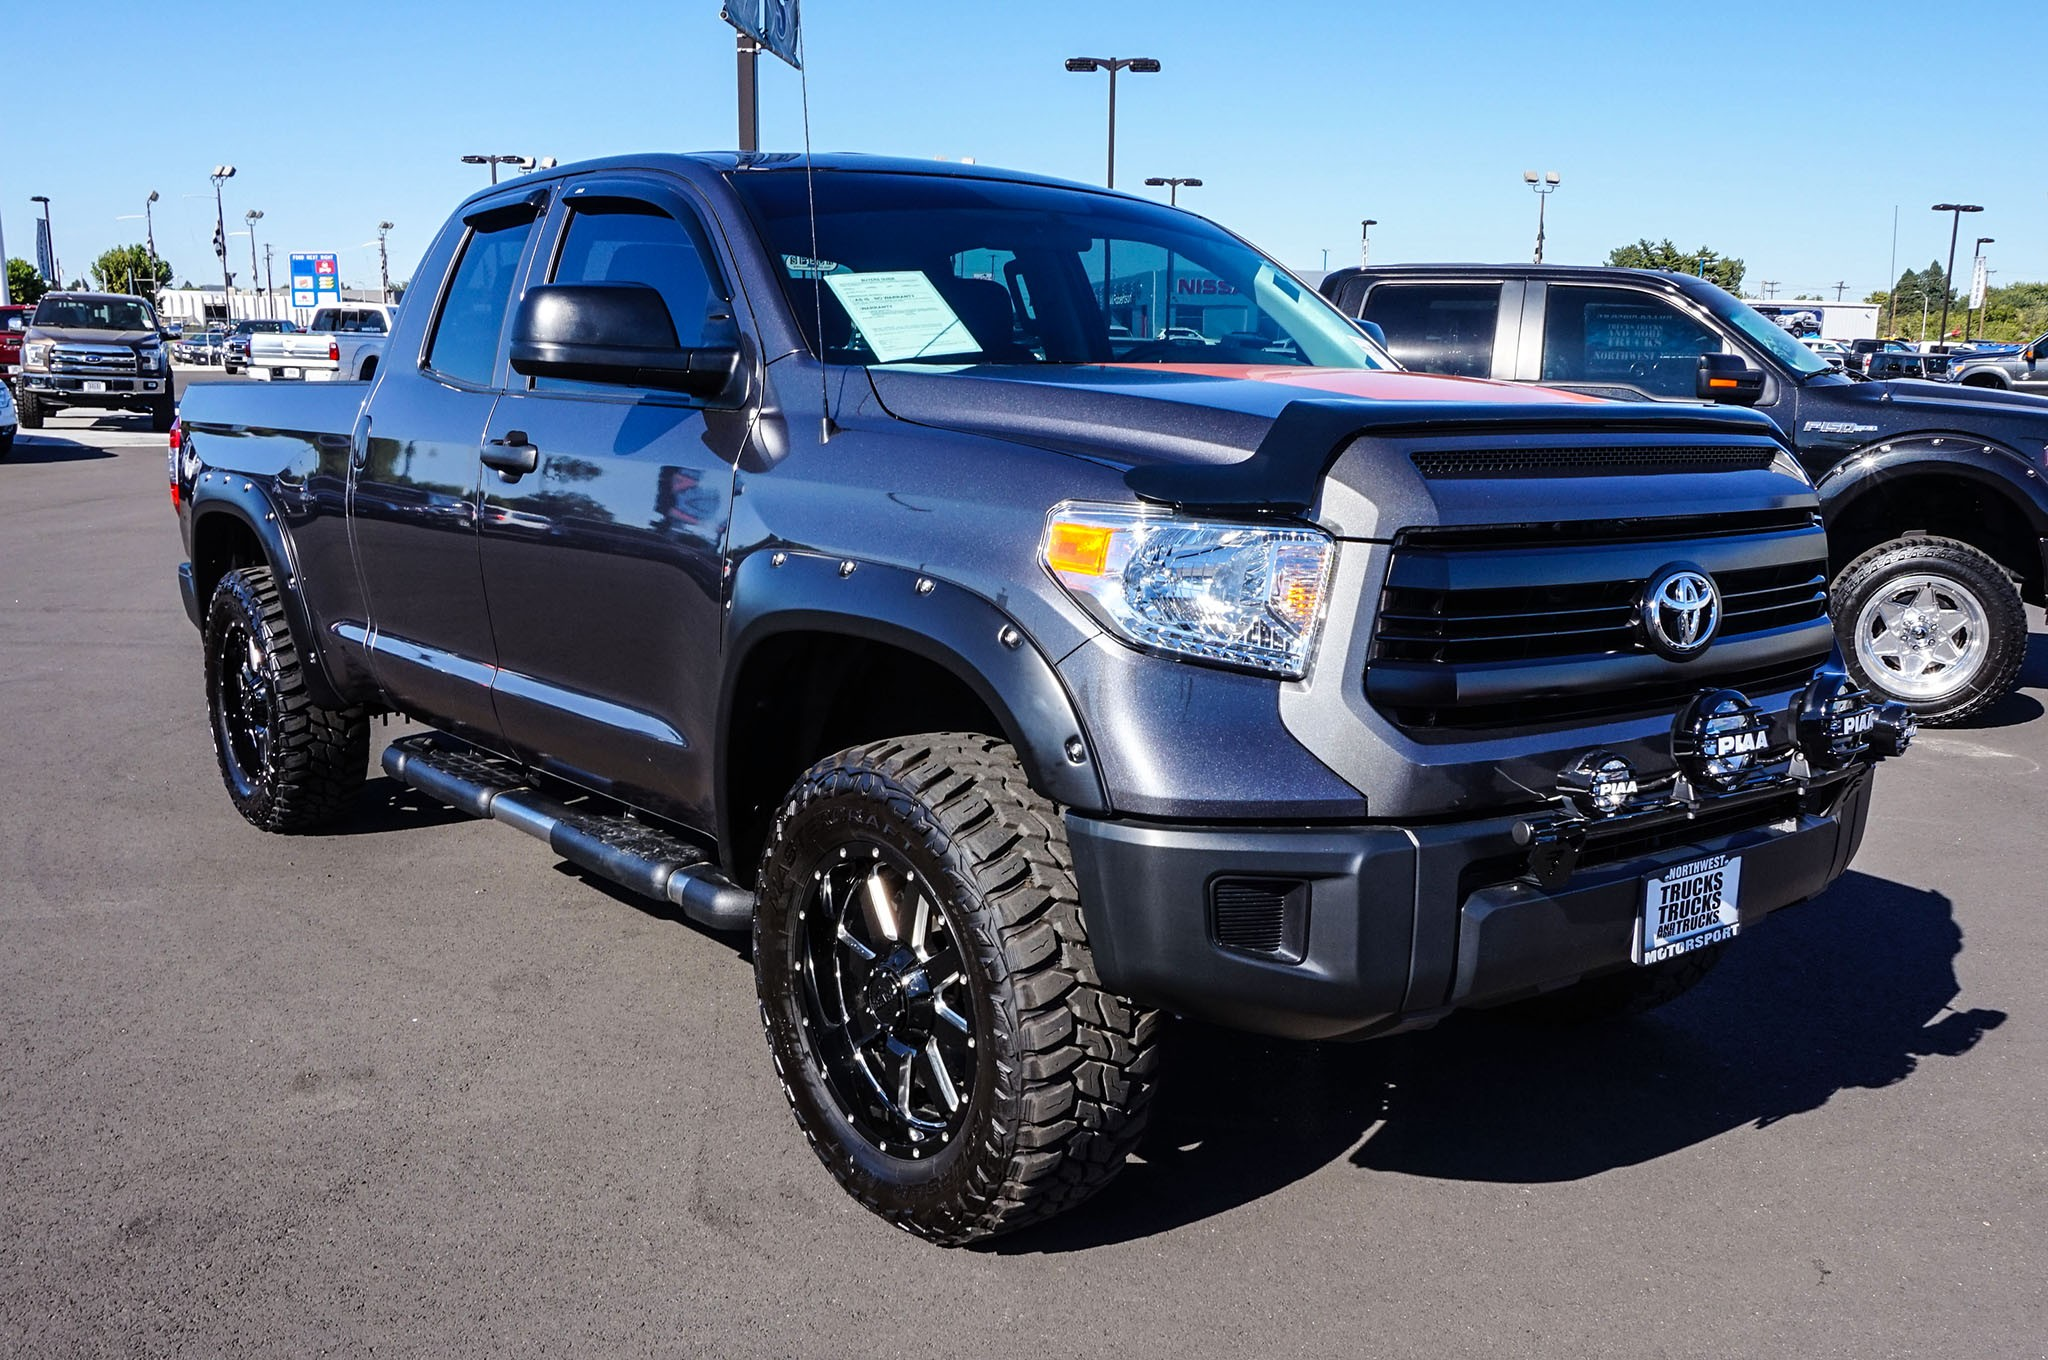 Toyota Trucks 4x4 Laurie Design 2004 Truck Lifted Used 2015 Tundra For Sale 34354